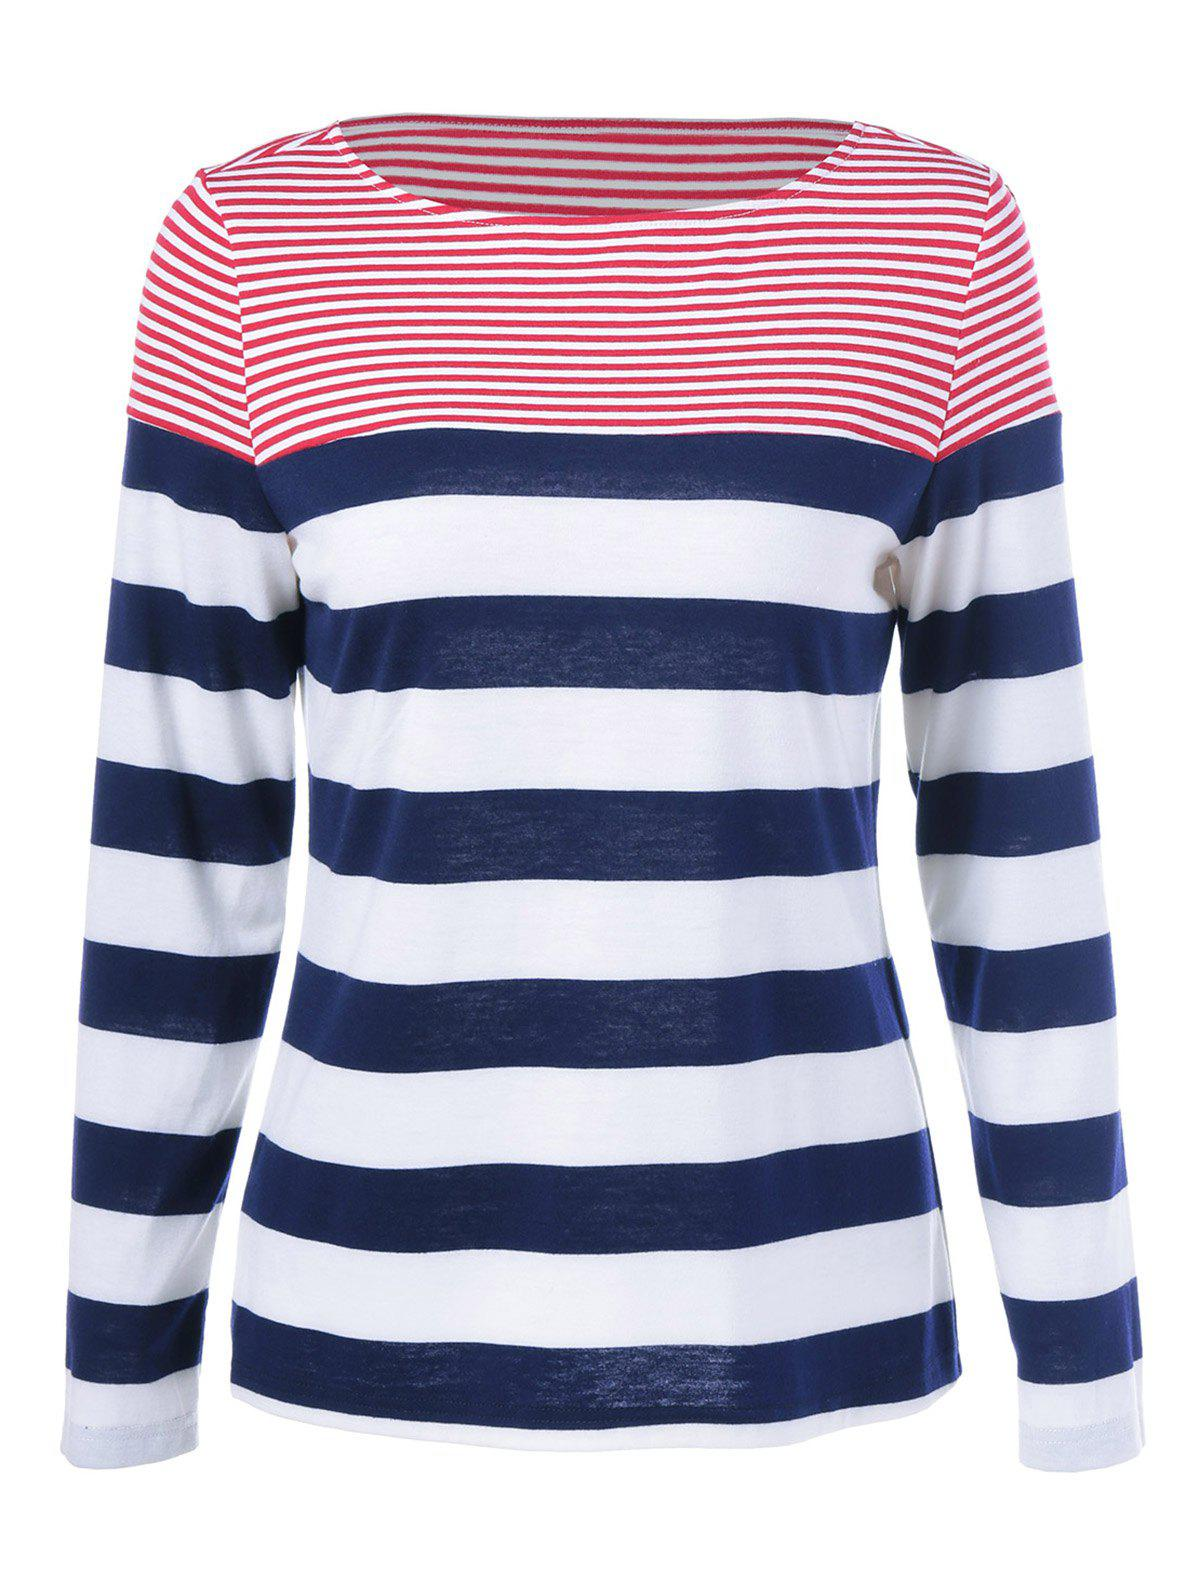 Striped Long Sleeves T-Shirt - COLORMIX XL